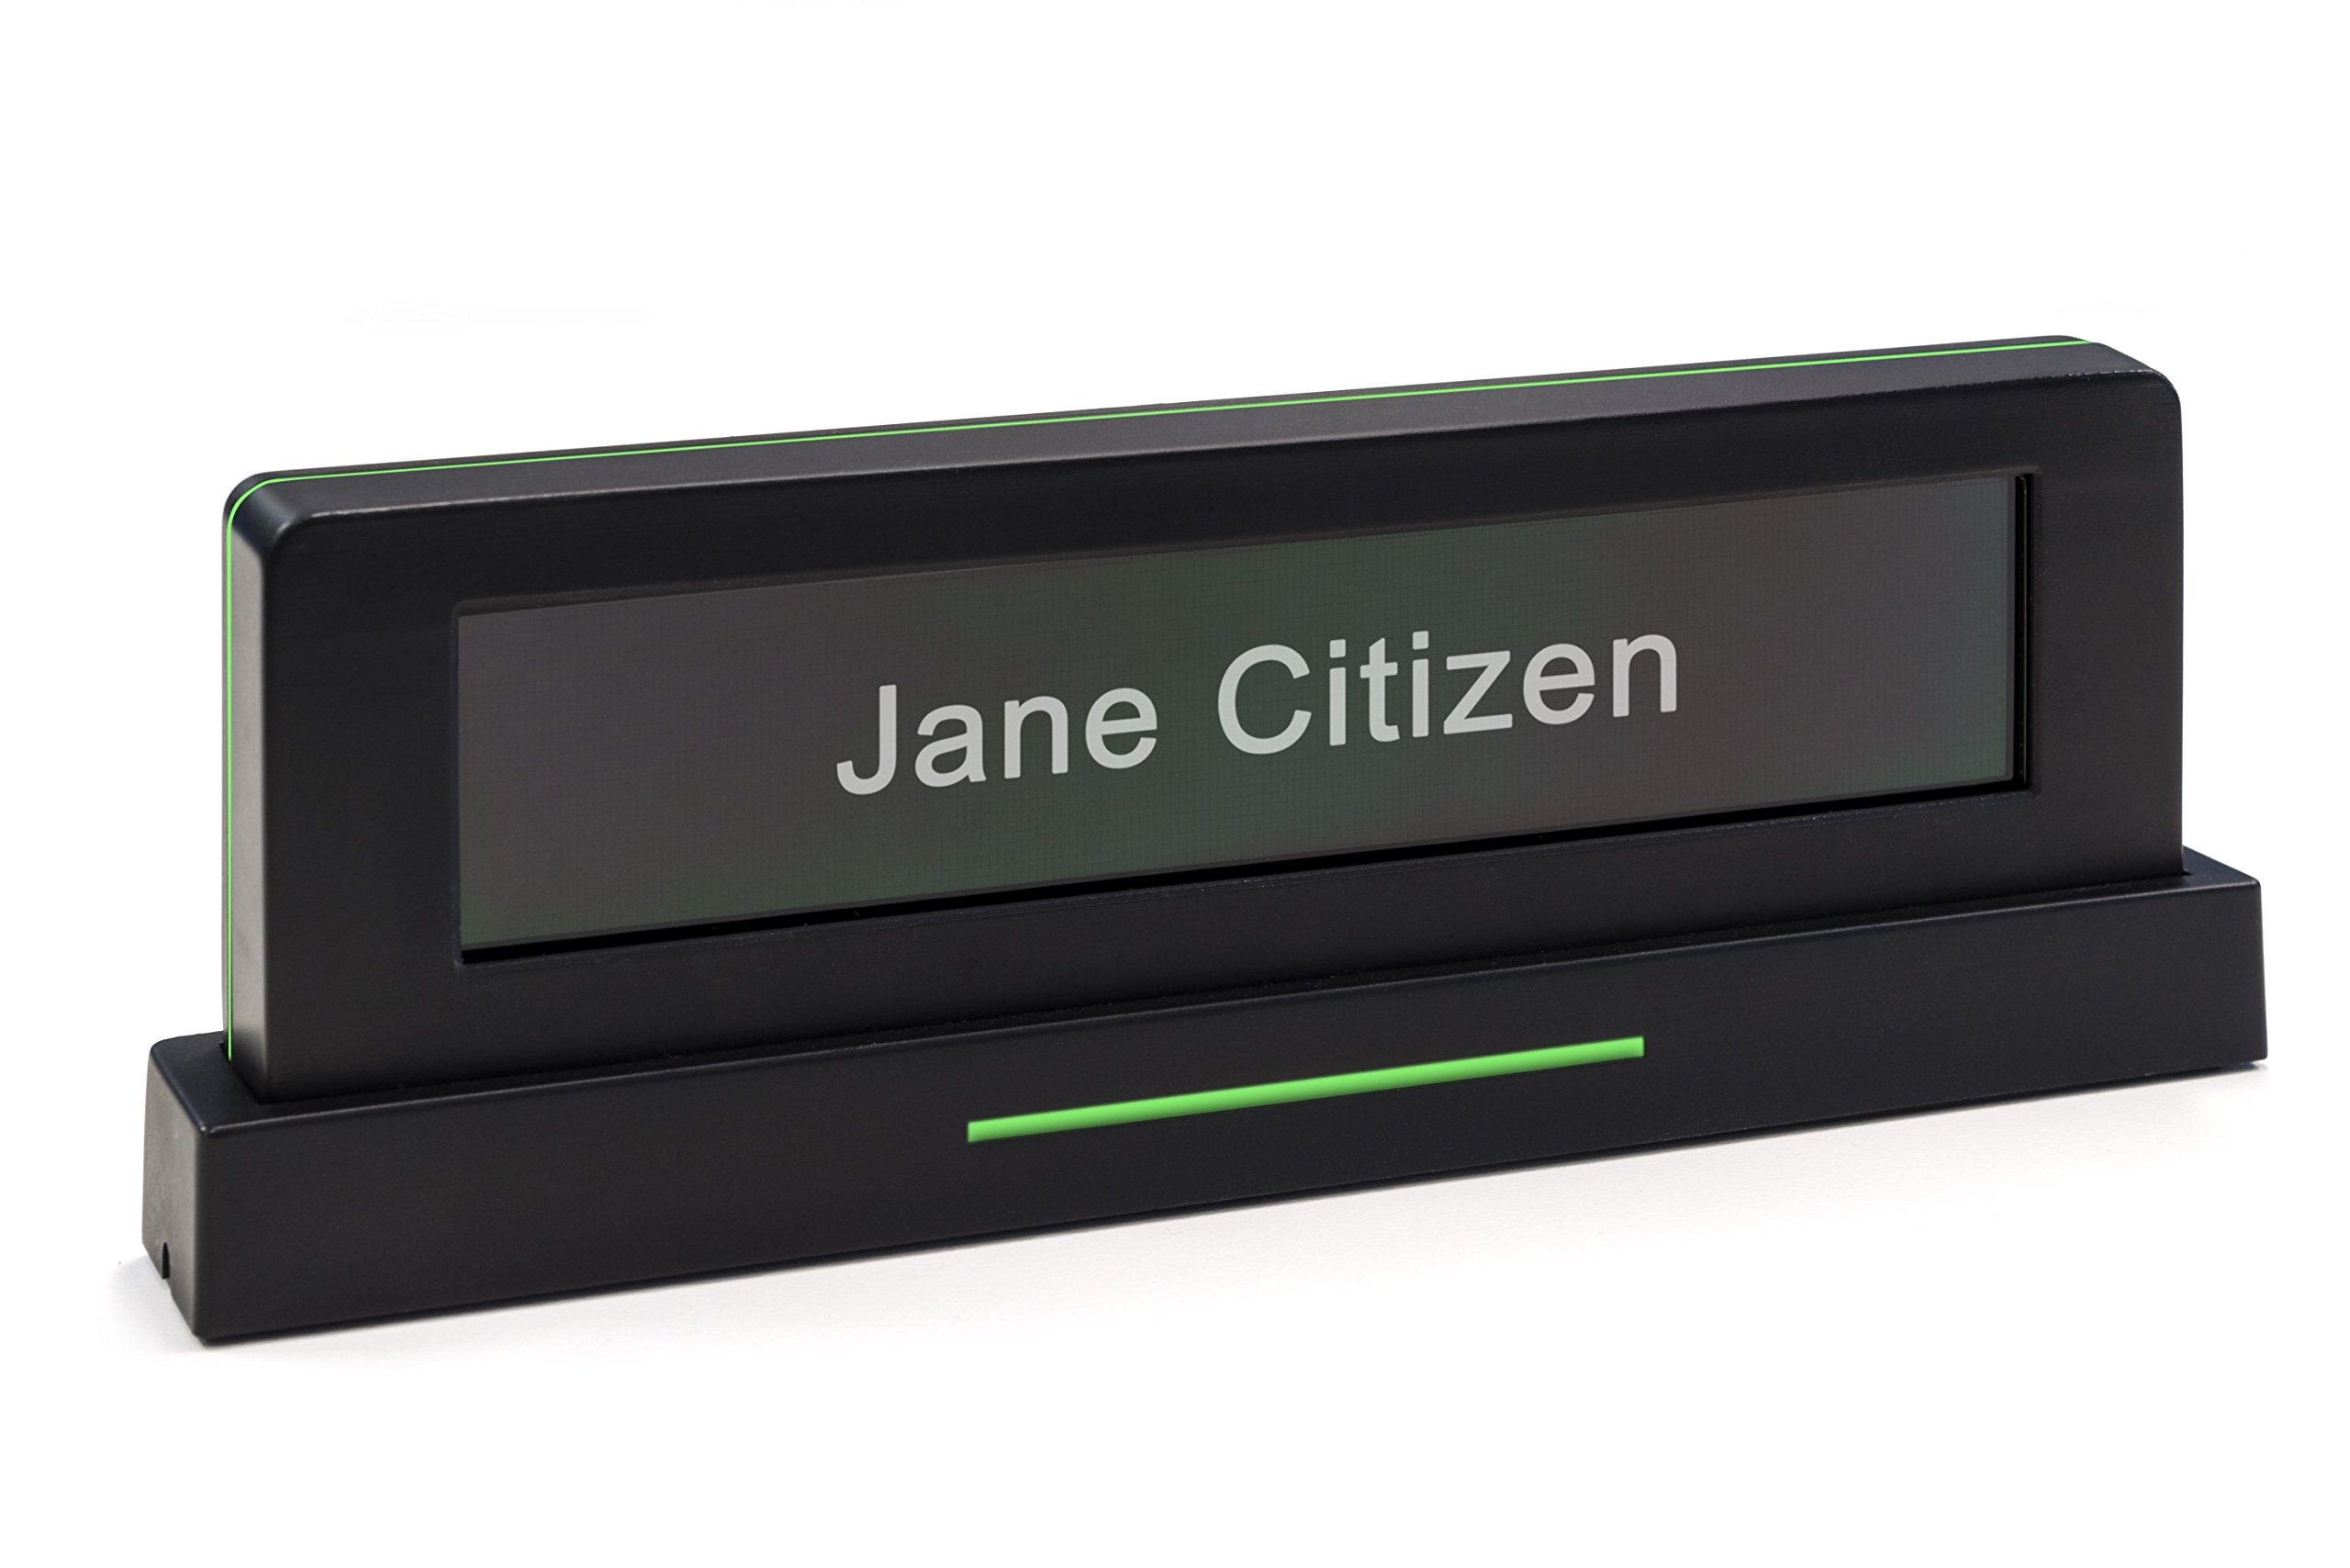 Embrava Blynclight Nameplate - Digital Name Display with Busy Light (Nameplate)